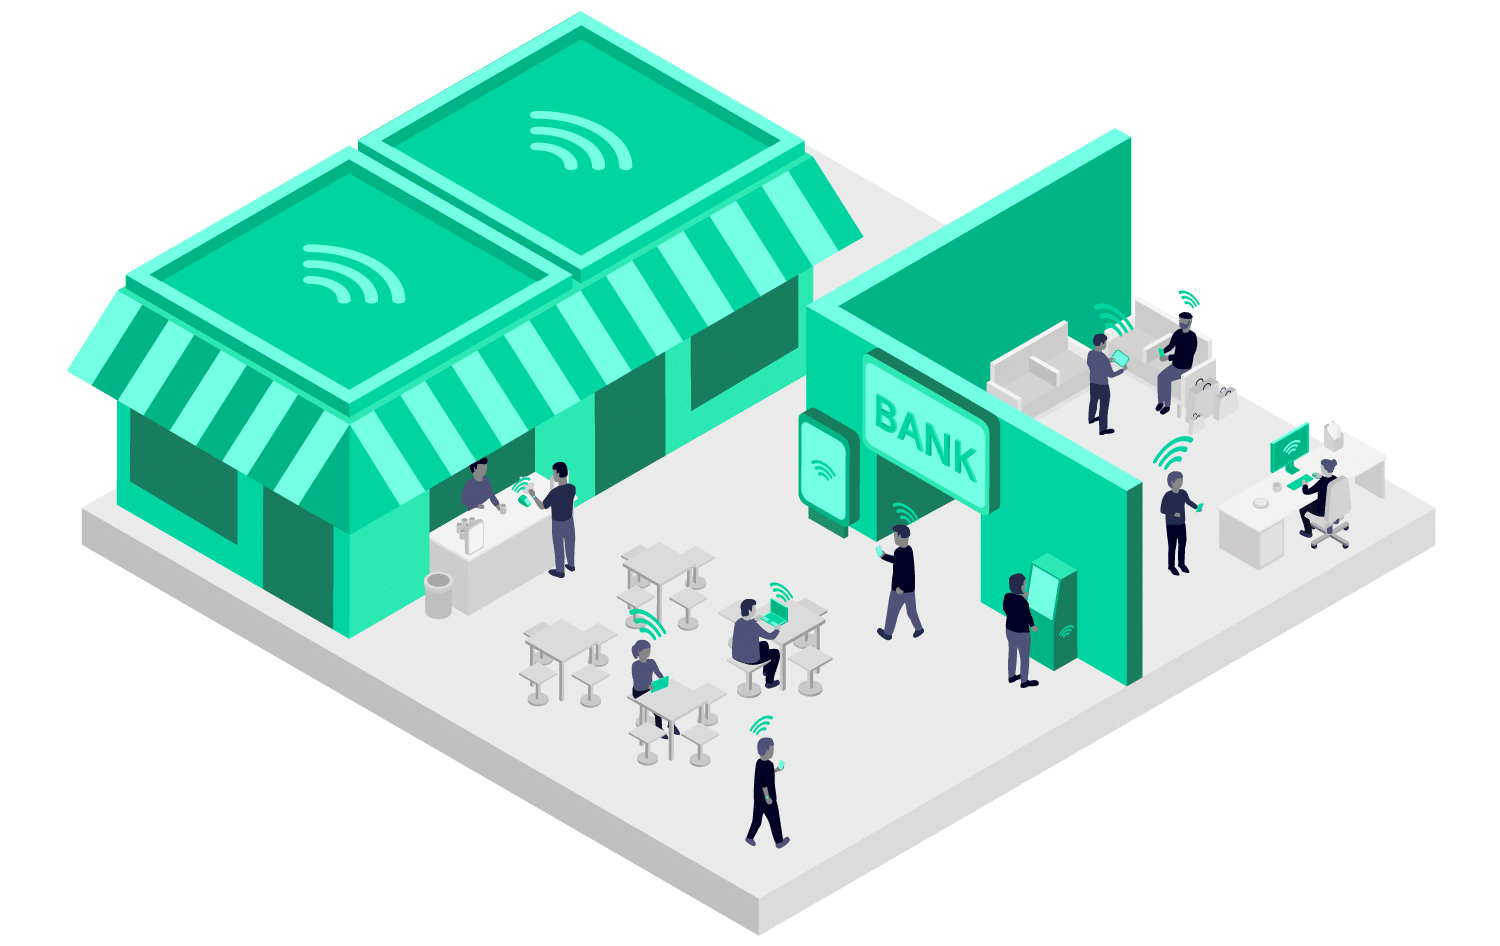 5G IoT in financial services